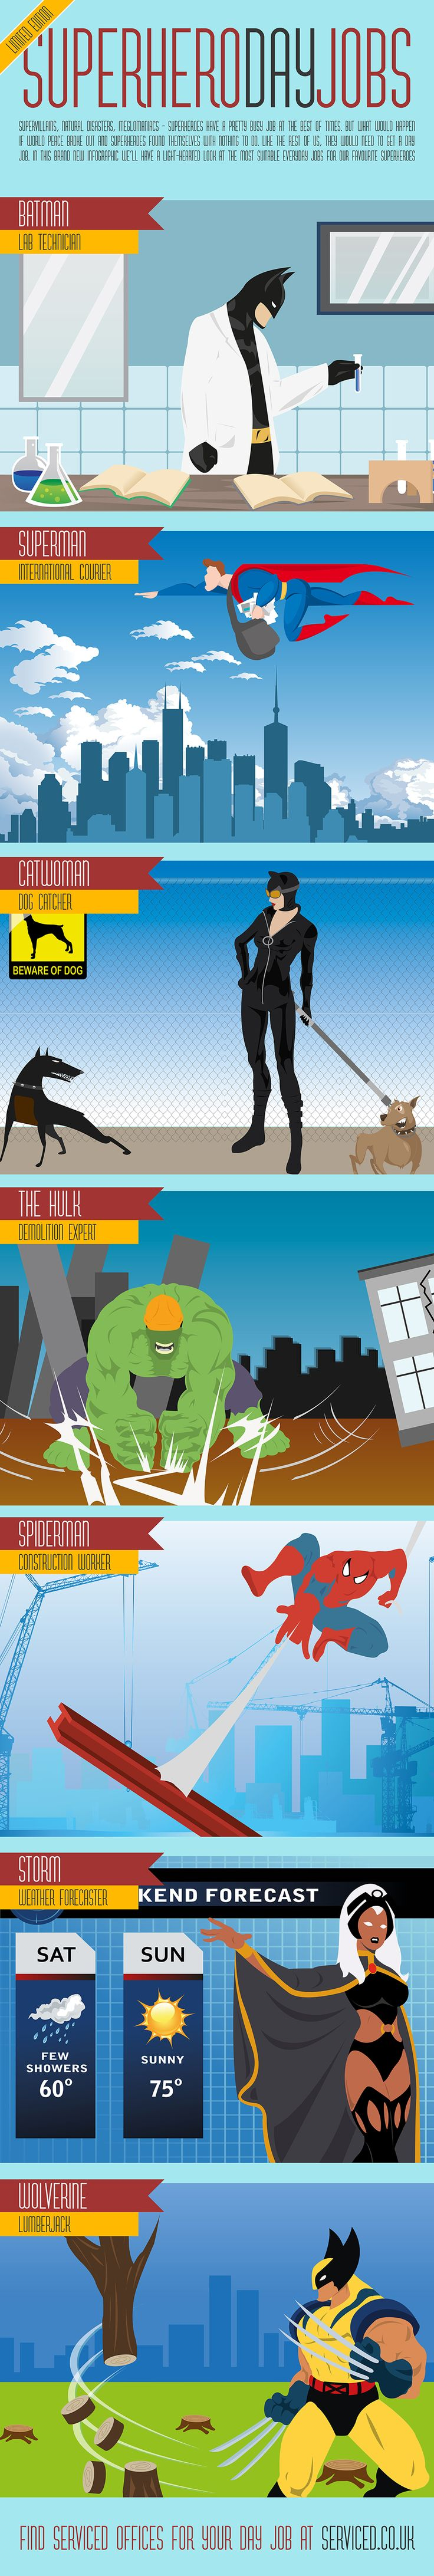 Supervillains, natural disasters , meglomaniacs – superheroes have a pretty busy job at the best of times. But what would happen if world peace broke out and superheroes found themselves with nothing to do.. In this brand new infographic we`ll have a light-hearted look at the most suitable everyday jobs for our favorite superheroes